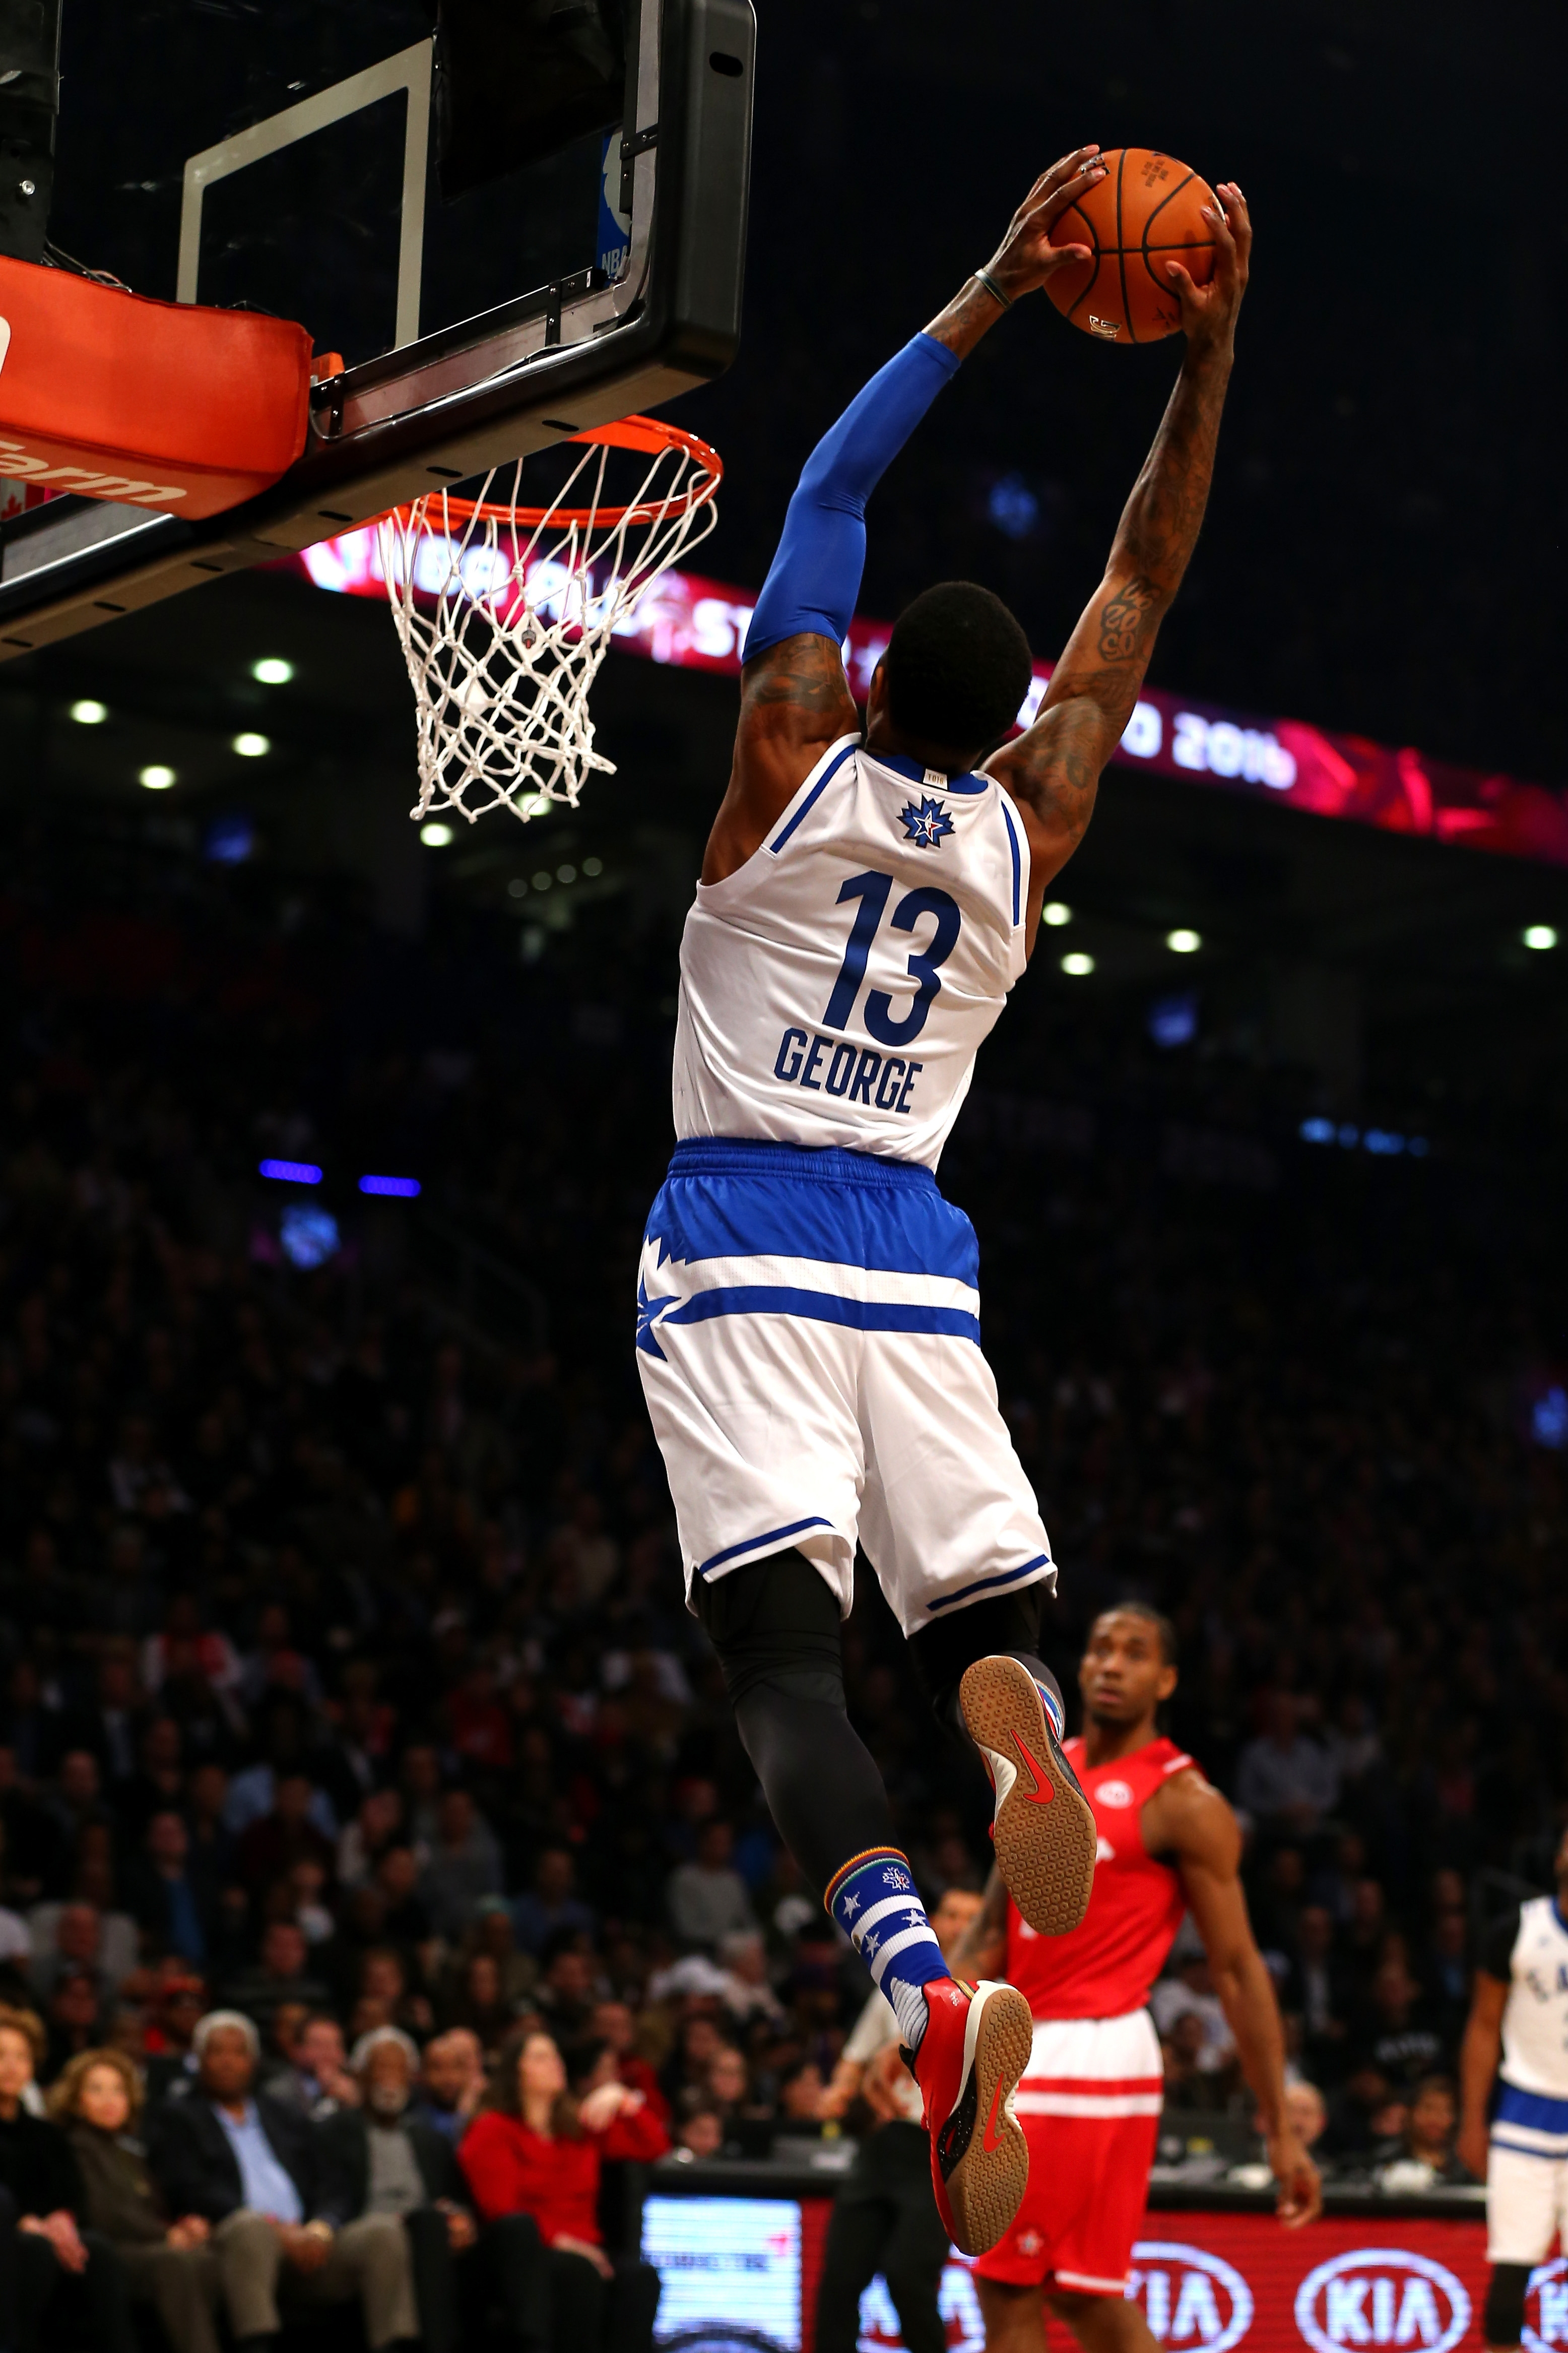 Eastern Conference All-Star Paul George of the Pacers throws down two of his 41 points.